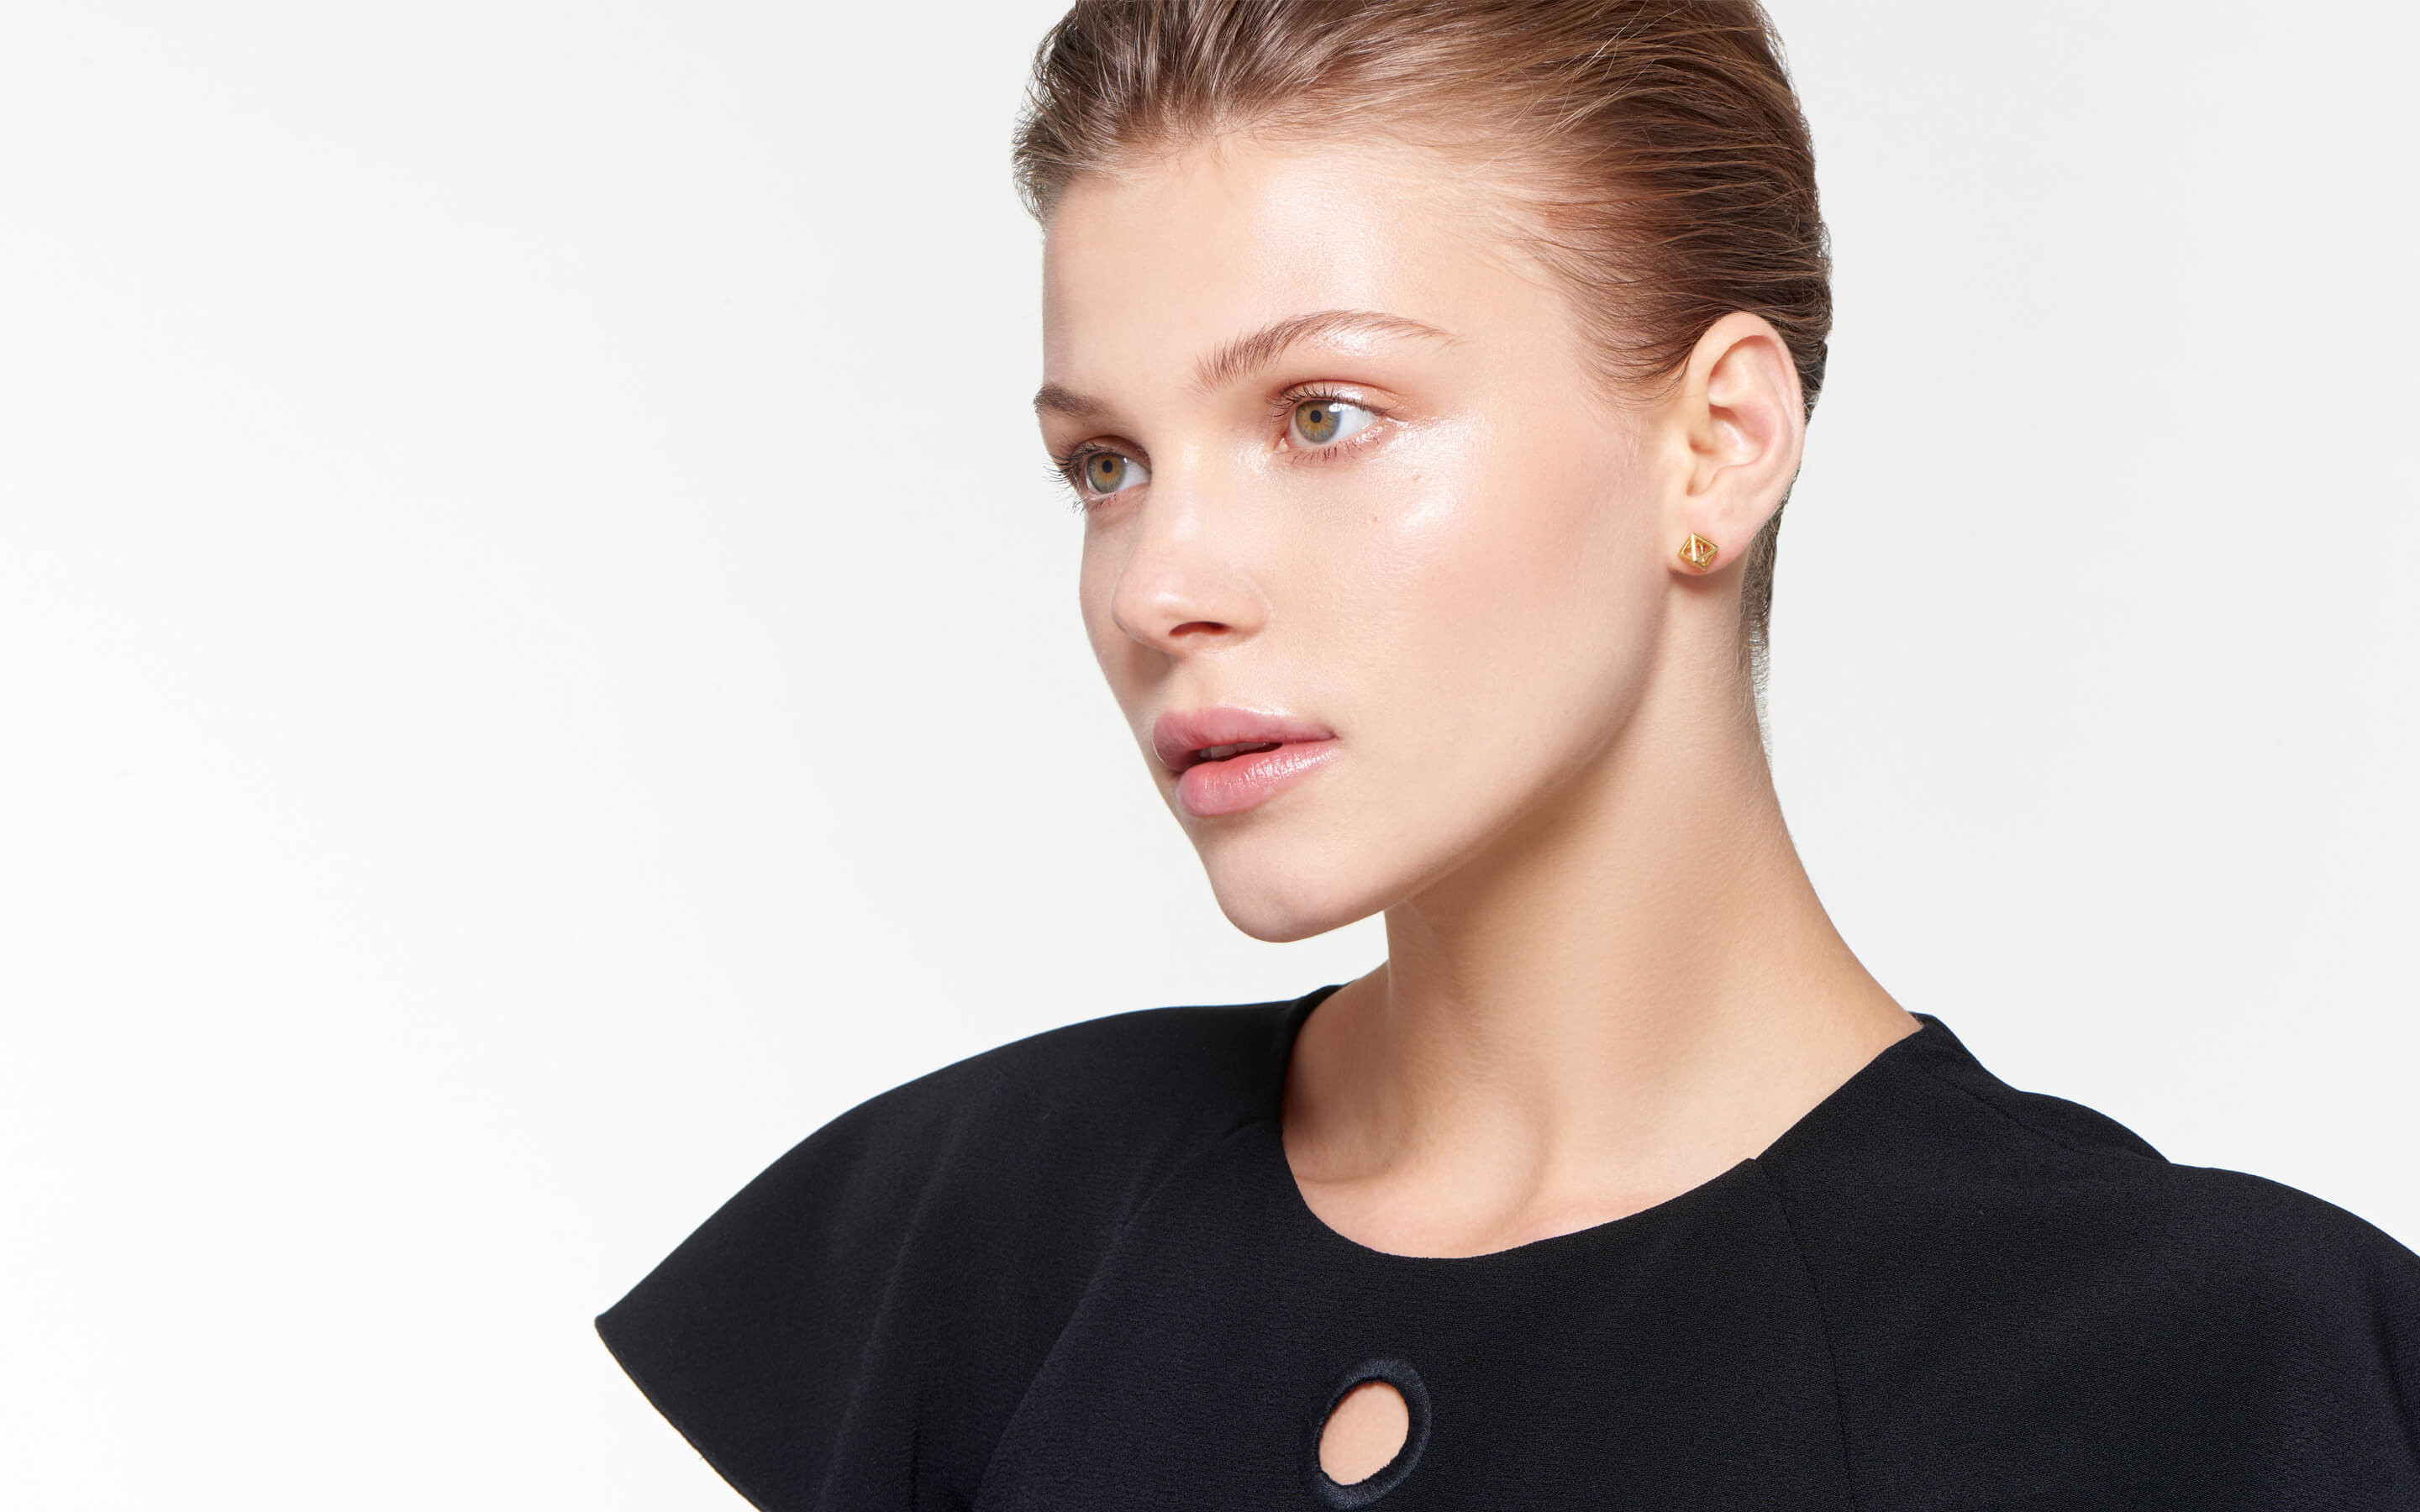 model with contemplative expression wearing dainty 22 karat polished gold earrings in cage design